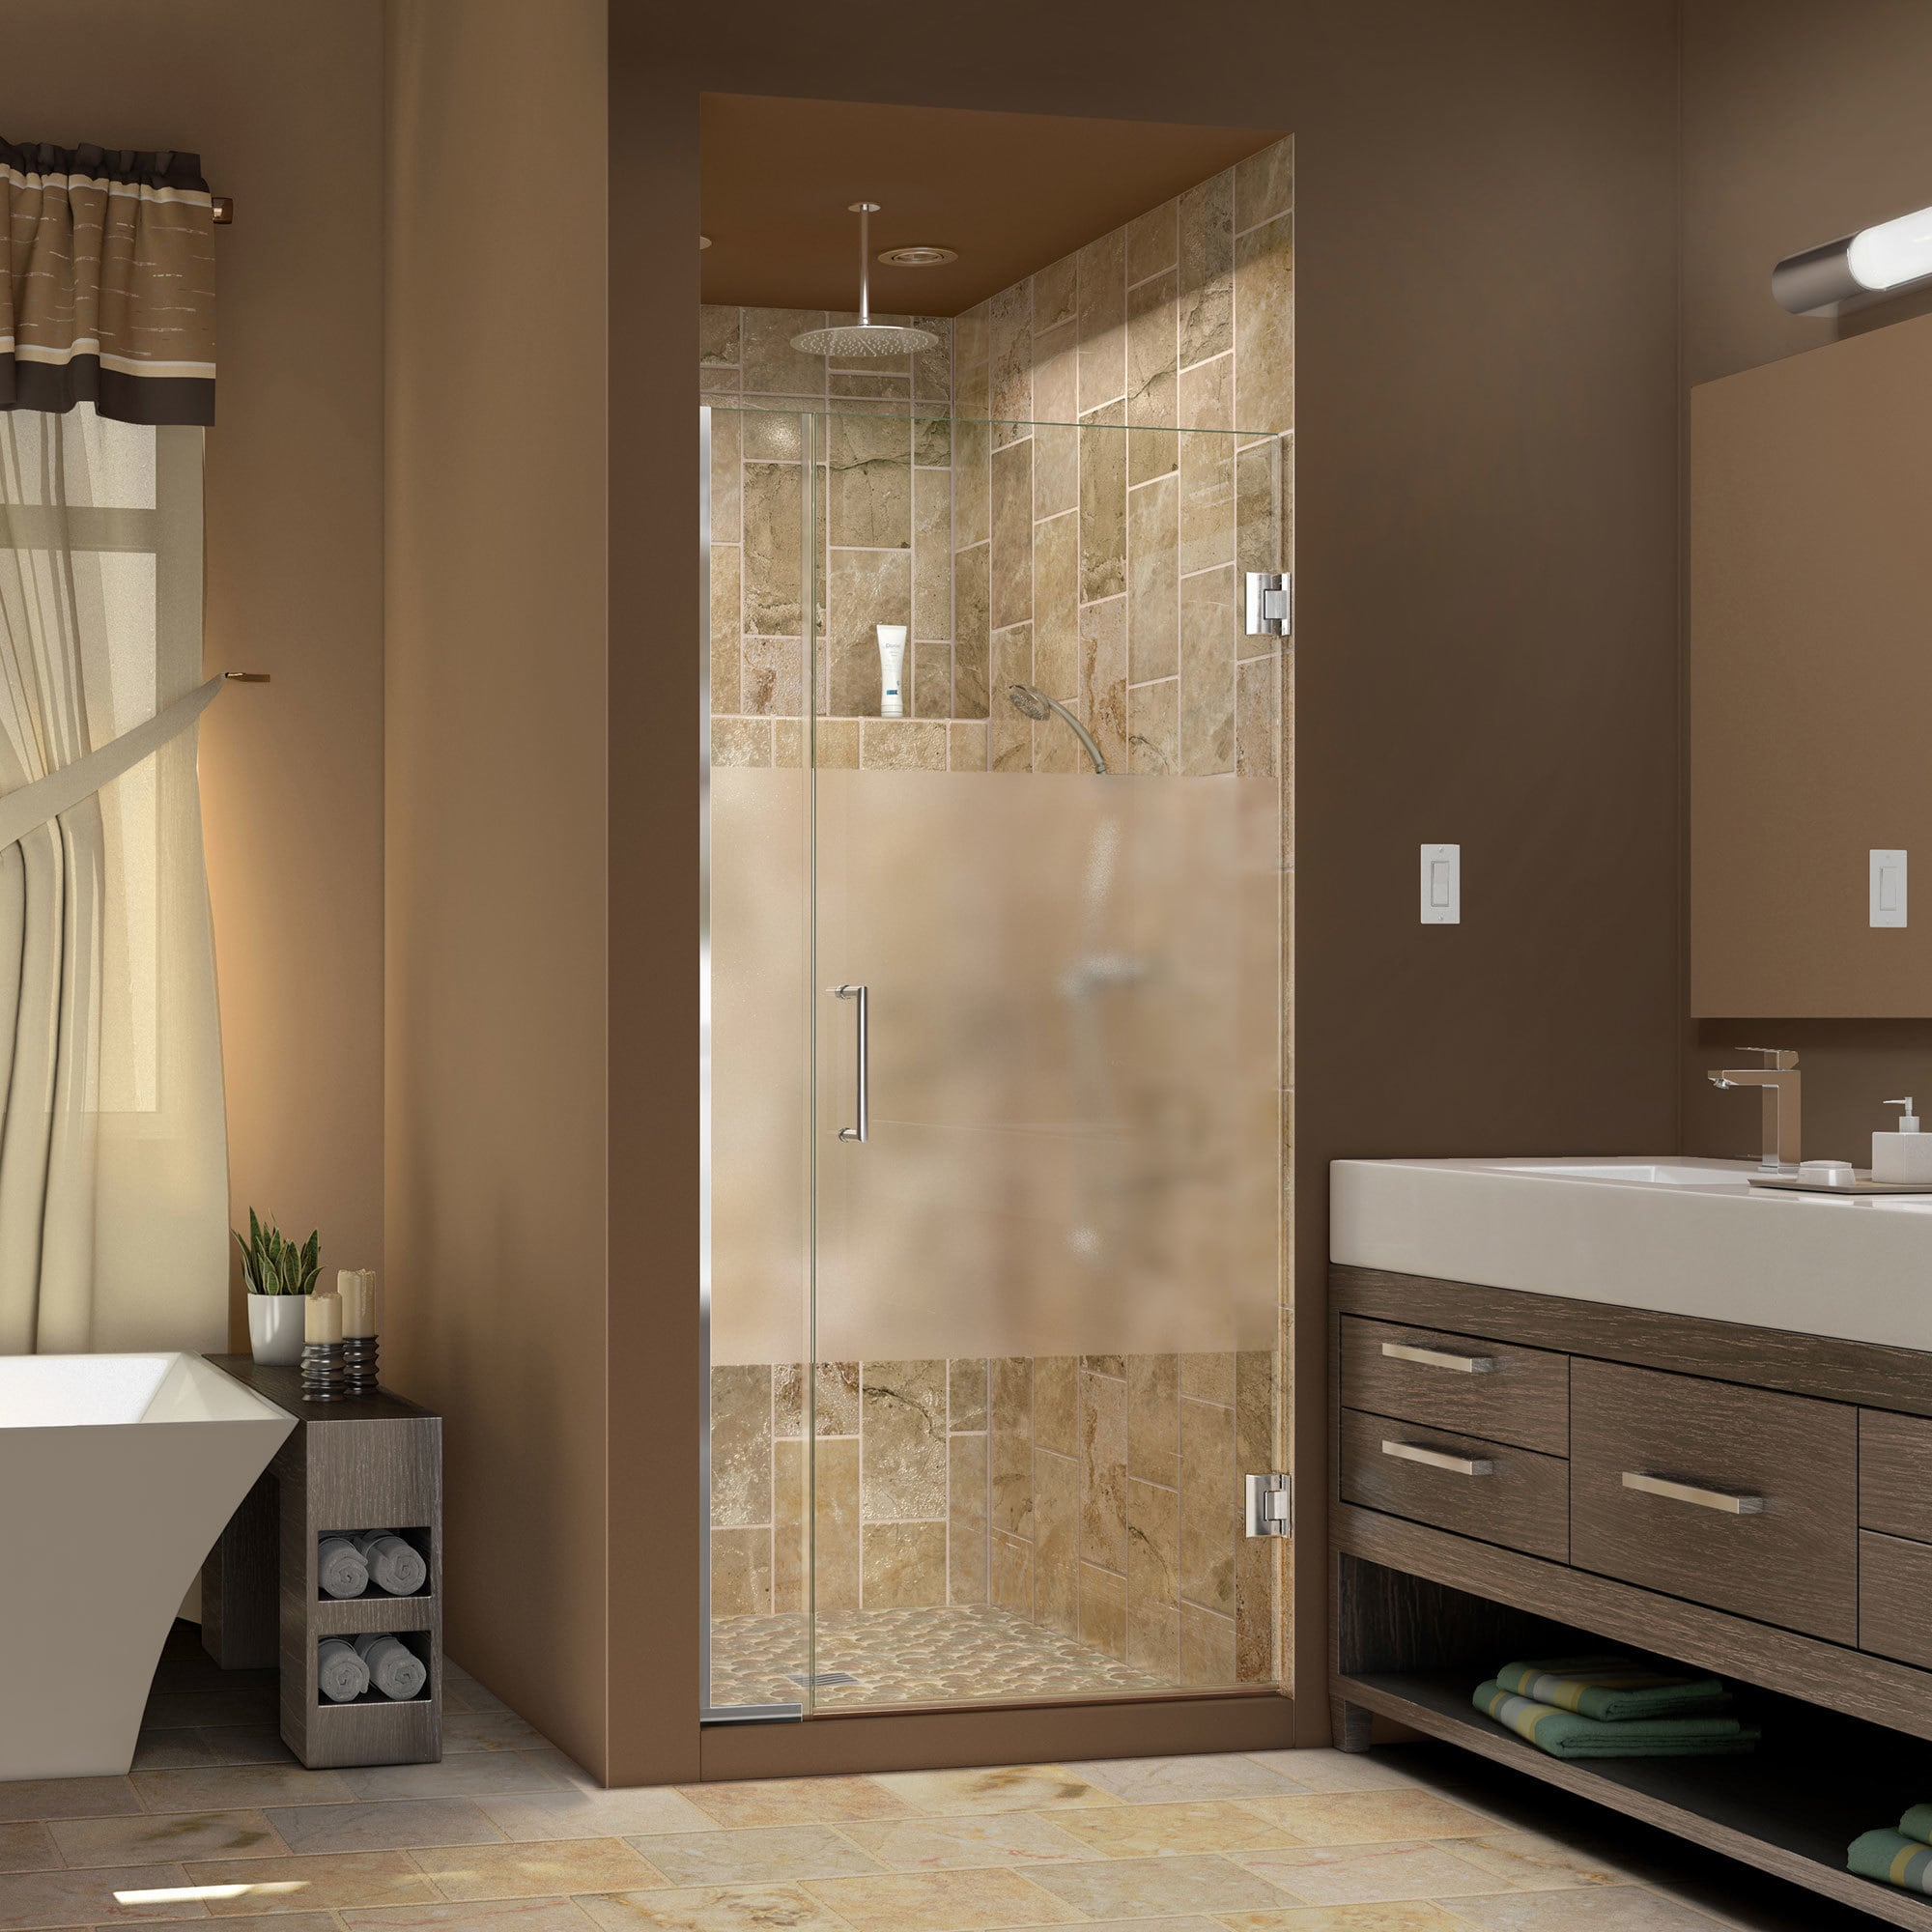 Dreamline Unidoor Plus 34 35 In W X 72 In H Hinged Shower Door Half Frosted Glass Door